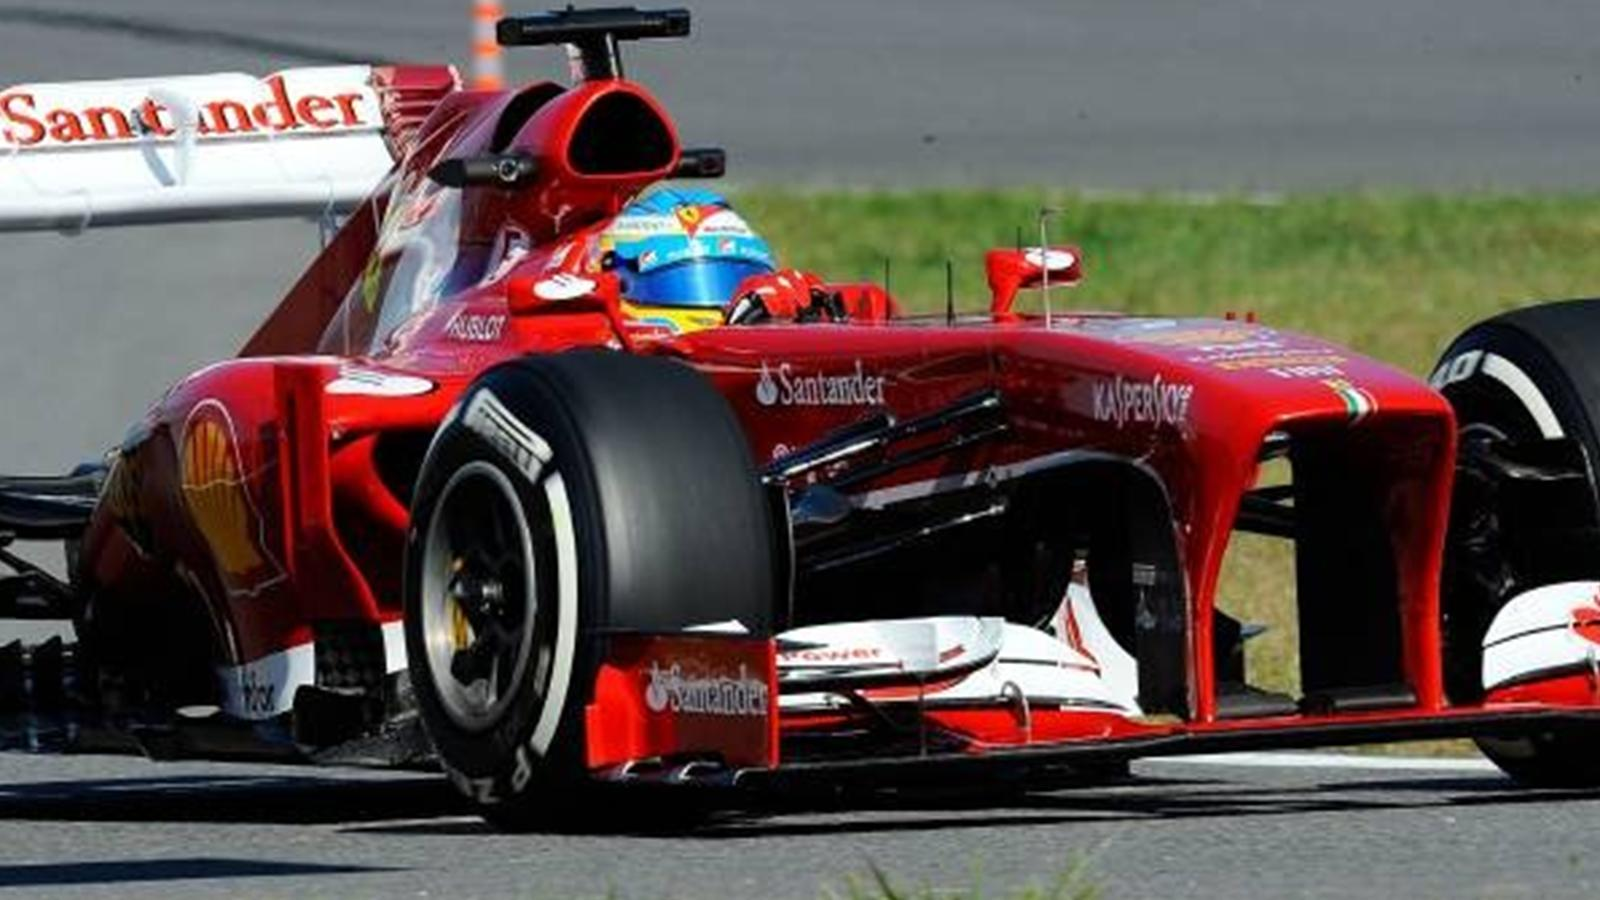 fernando alonso ferrari ferrari a besoin d 39 une autre voiture grand prix de cor e 2013. Black Bedroom Furniture Sets. Home Design Ideas